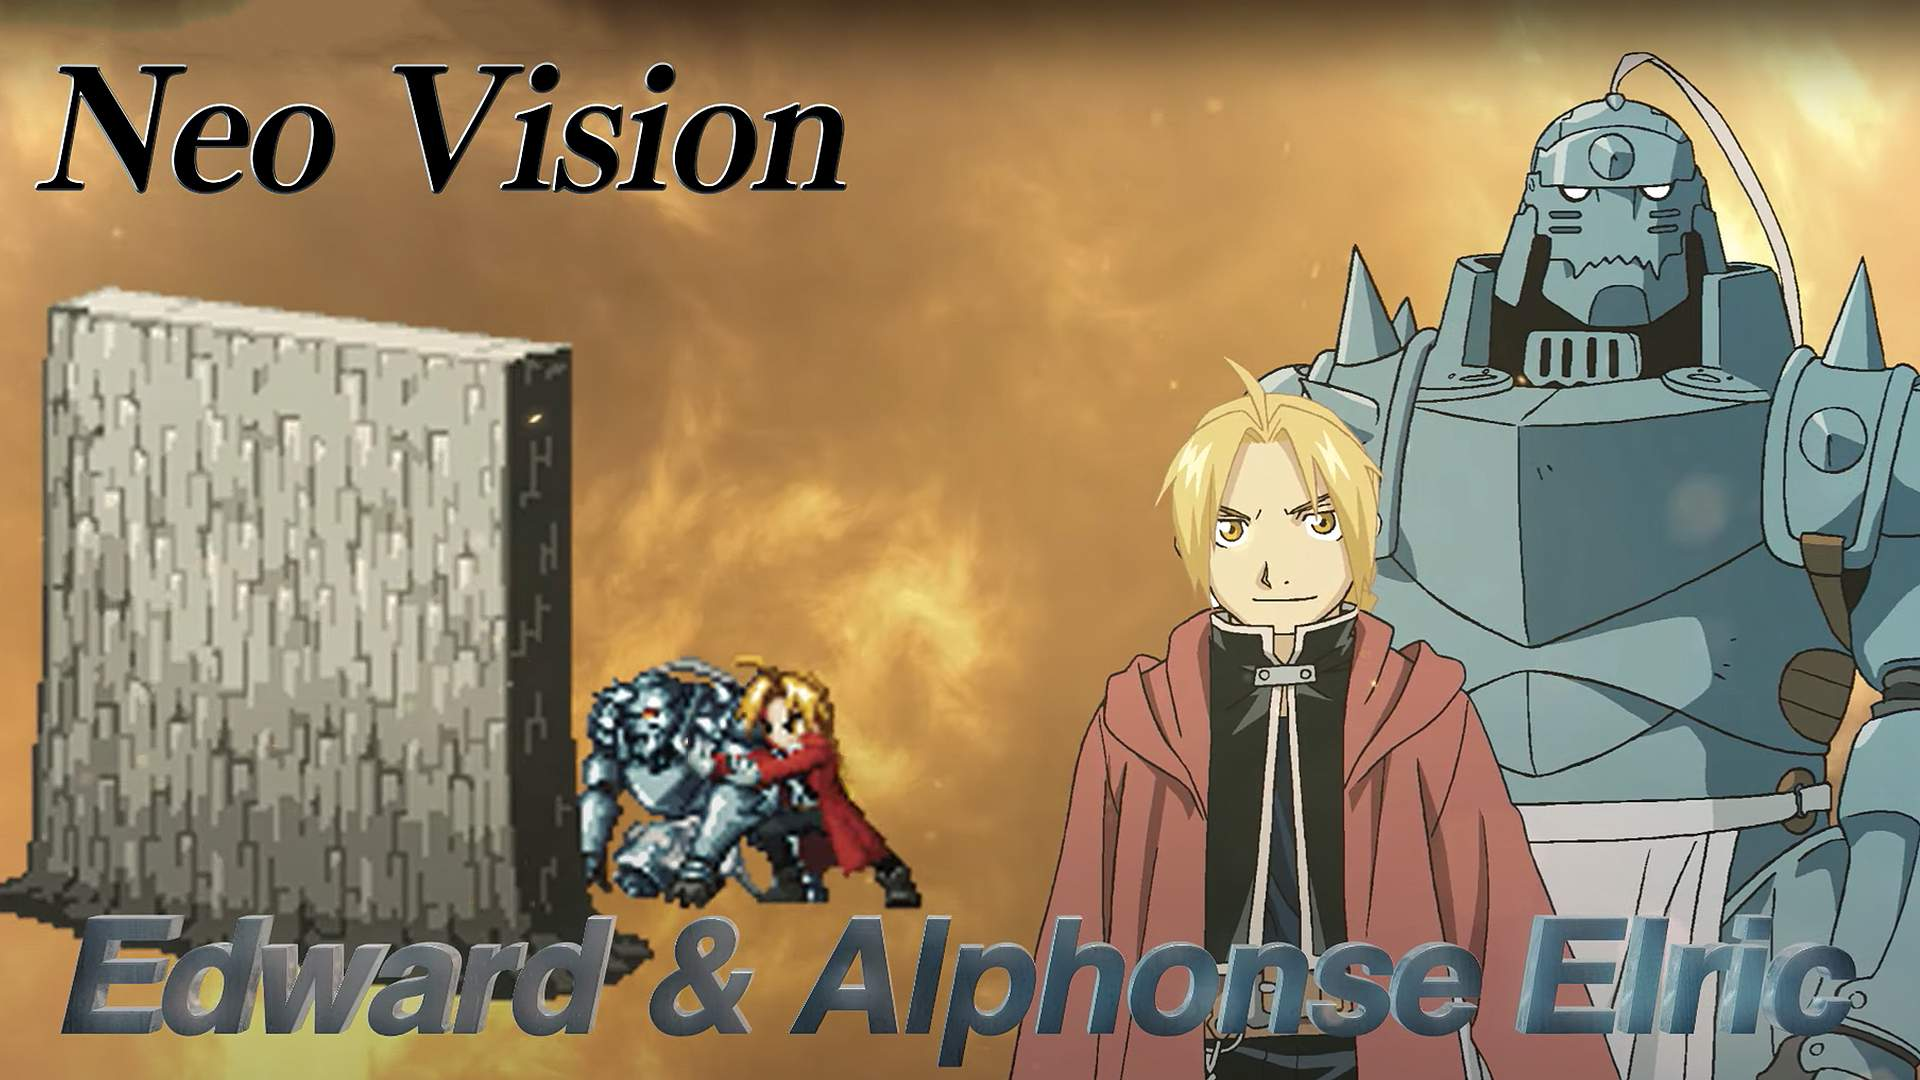 Edward & Alphonse Elric from FULLMETAL ALCHEMIST BROTHERHOOD, featured in FINAL FANTASY BRAVE EXVIUS